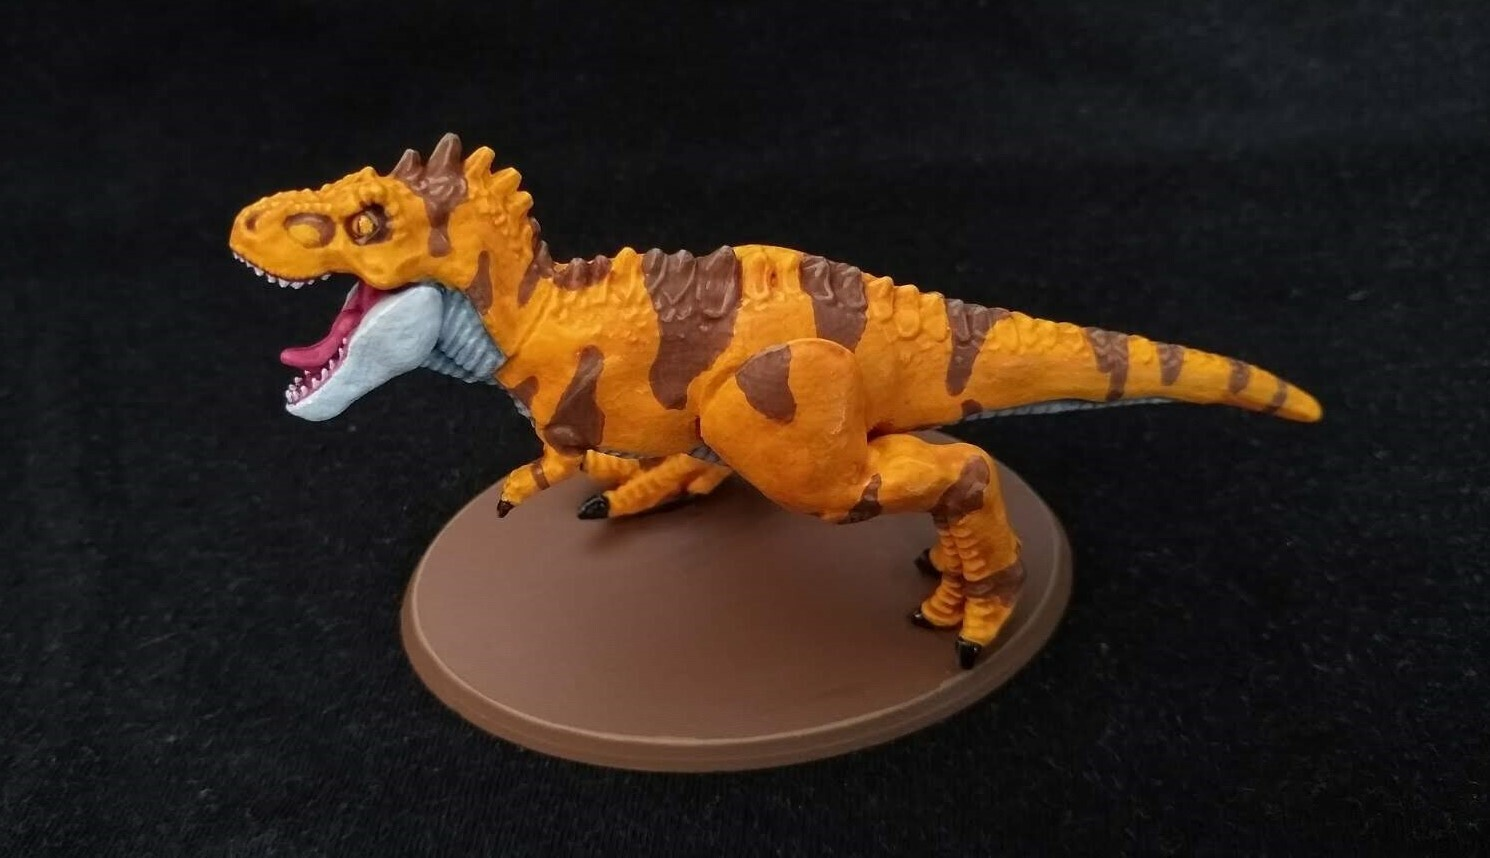 3D printed and Painted